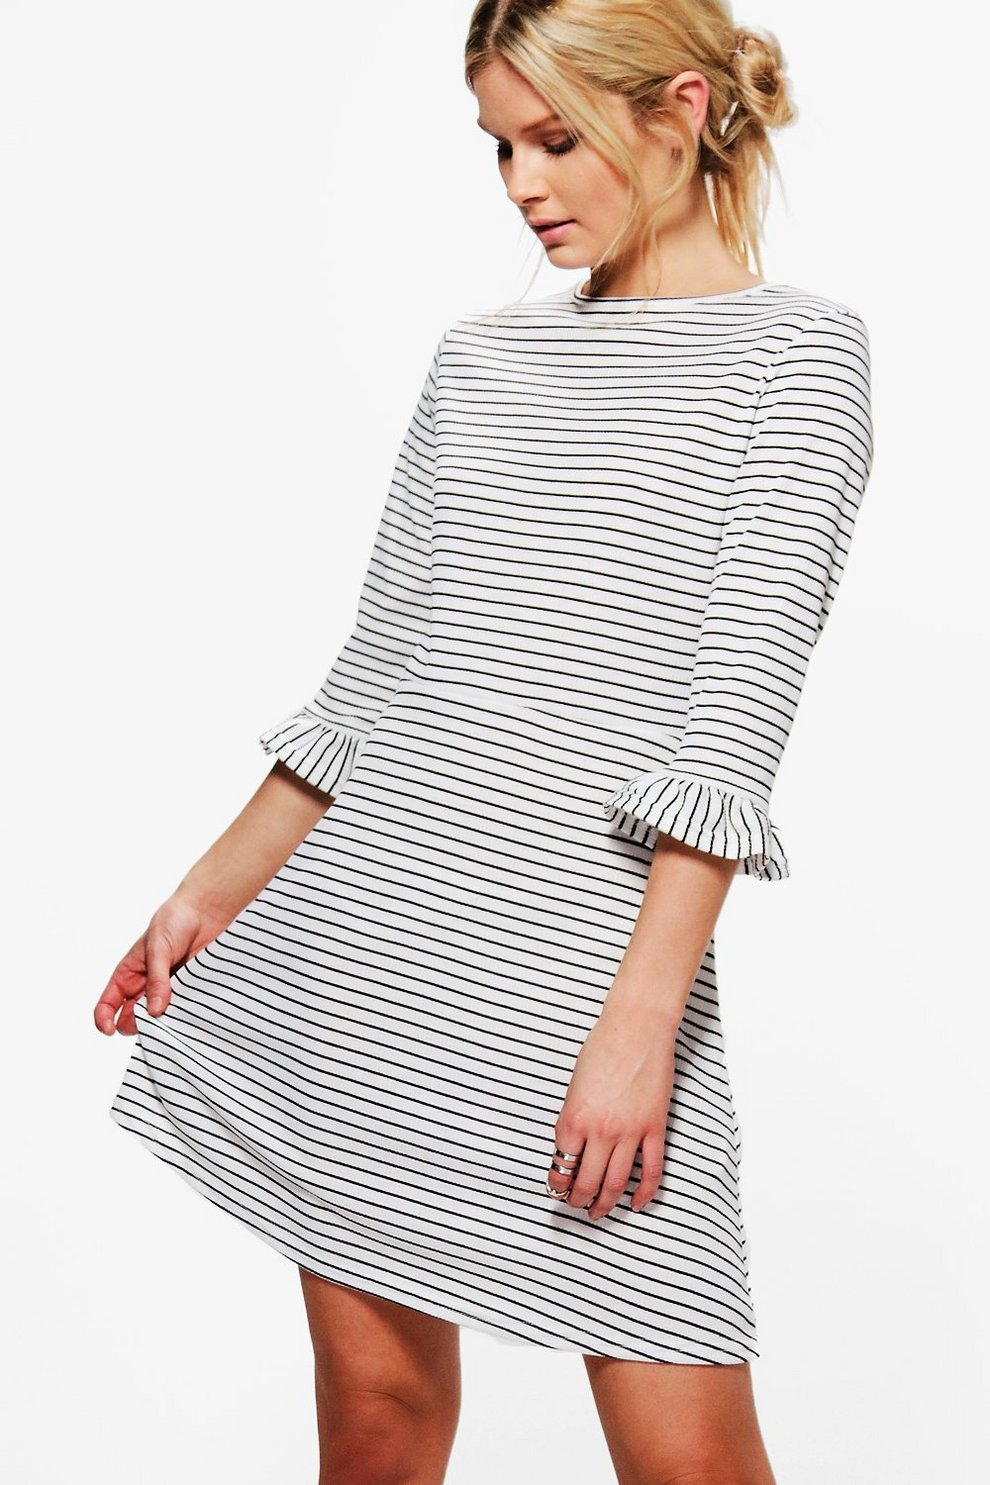 Boohoo Stripe Frill Sleeve Skater Dress Newest Cheap Online Discount Find Great Cheap Sale High Quality Clearance Cheap Sale Online FG5JSj